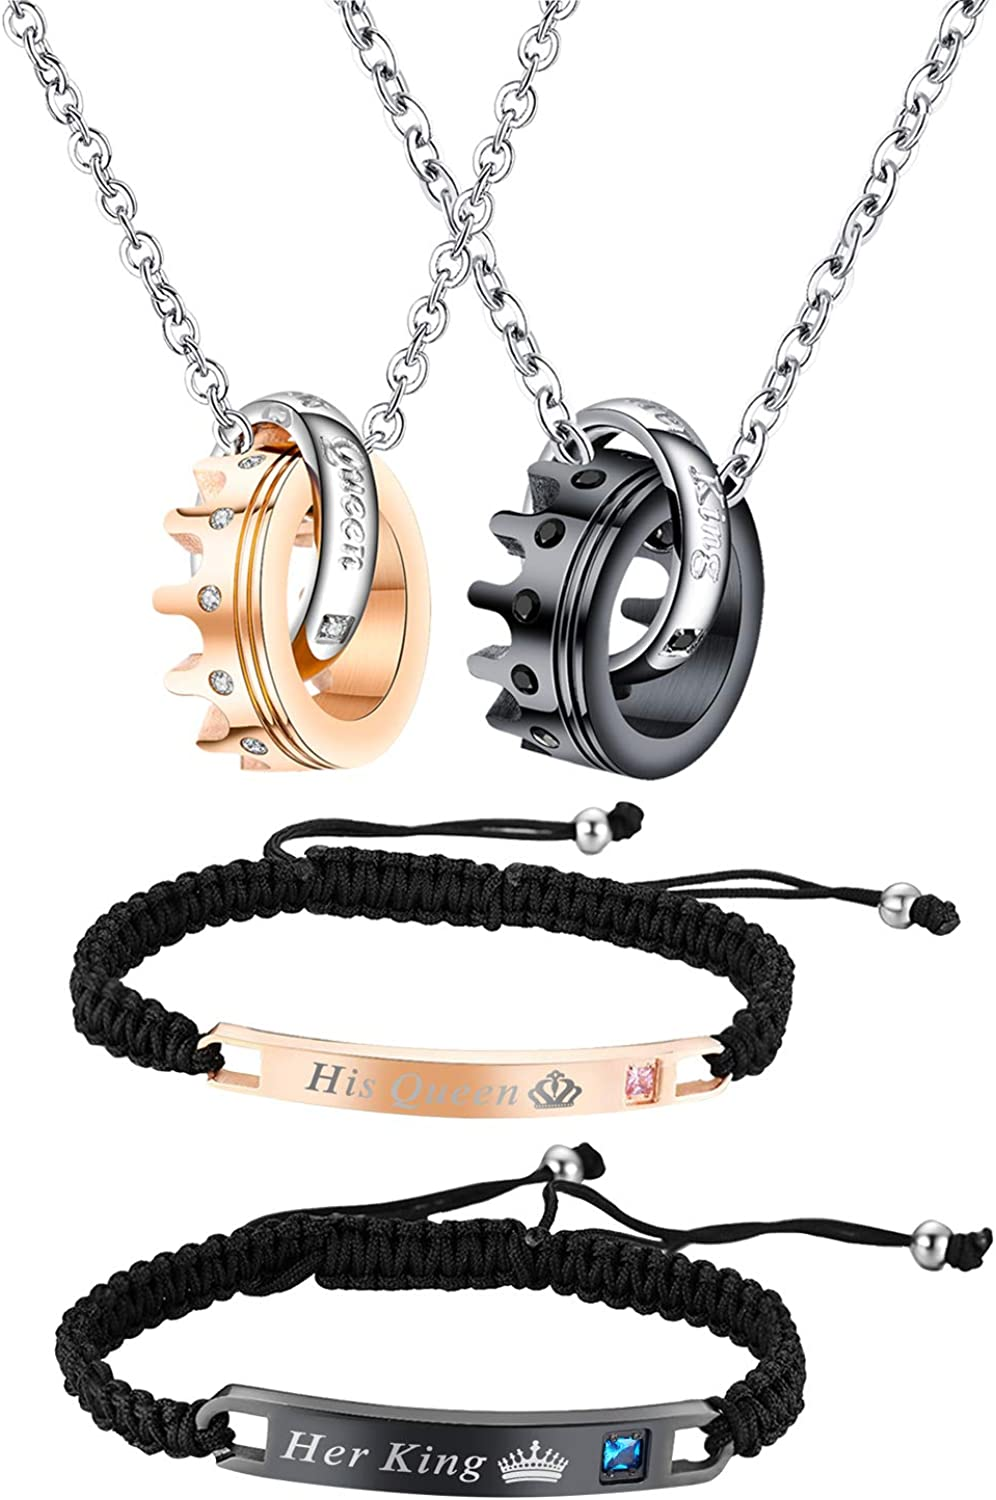 Couples Jewelry Sets-Hand Braided His Queen and Her King Bracelets, Crown Ring Matching Necklaces, for Chirstmas,Valentines Day Gift,with Gift Box